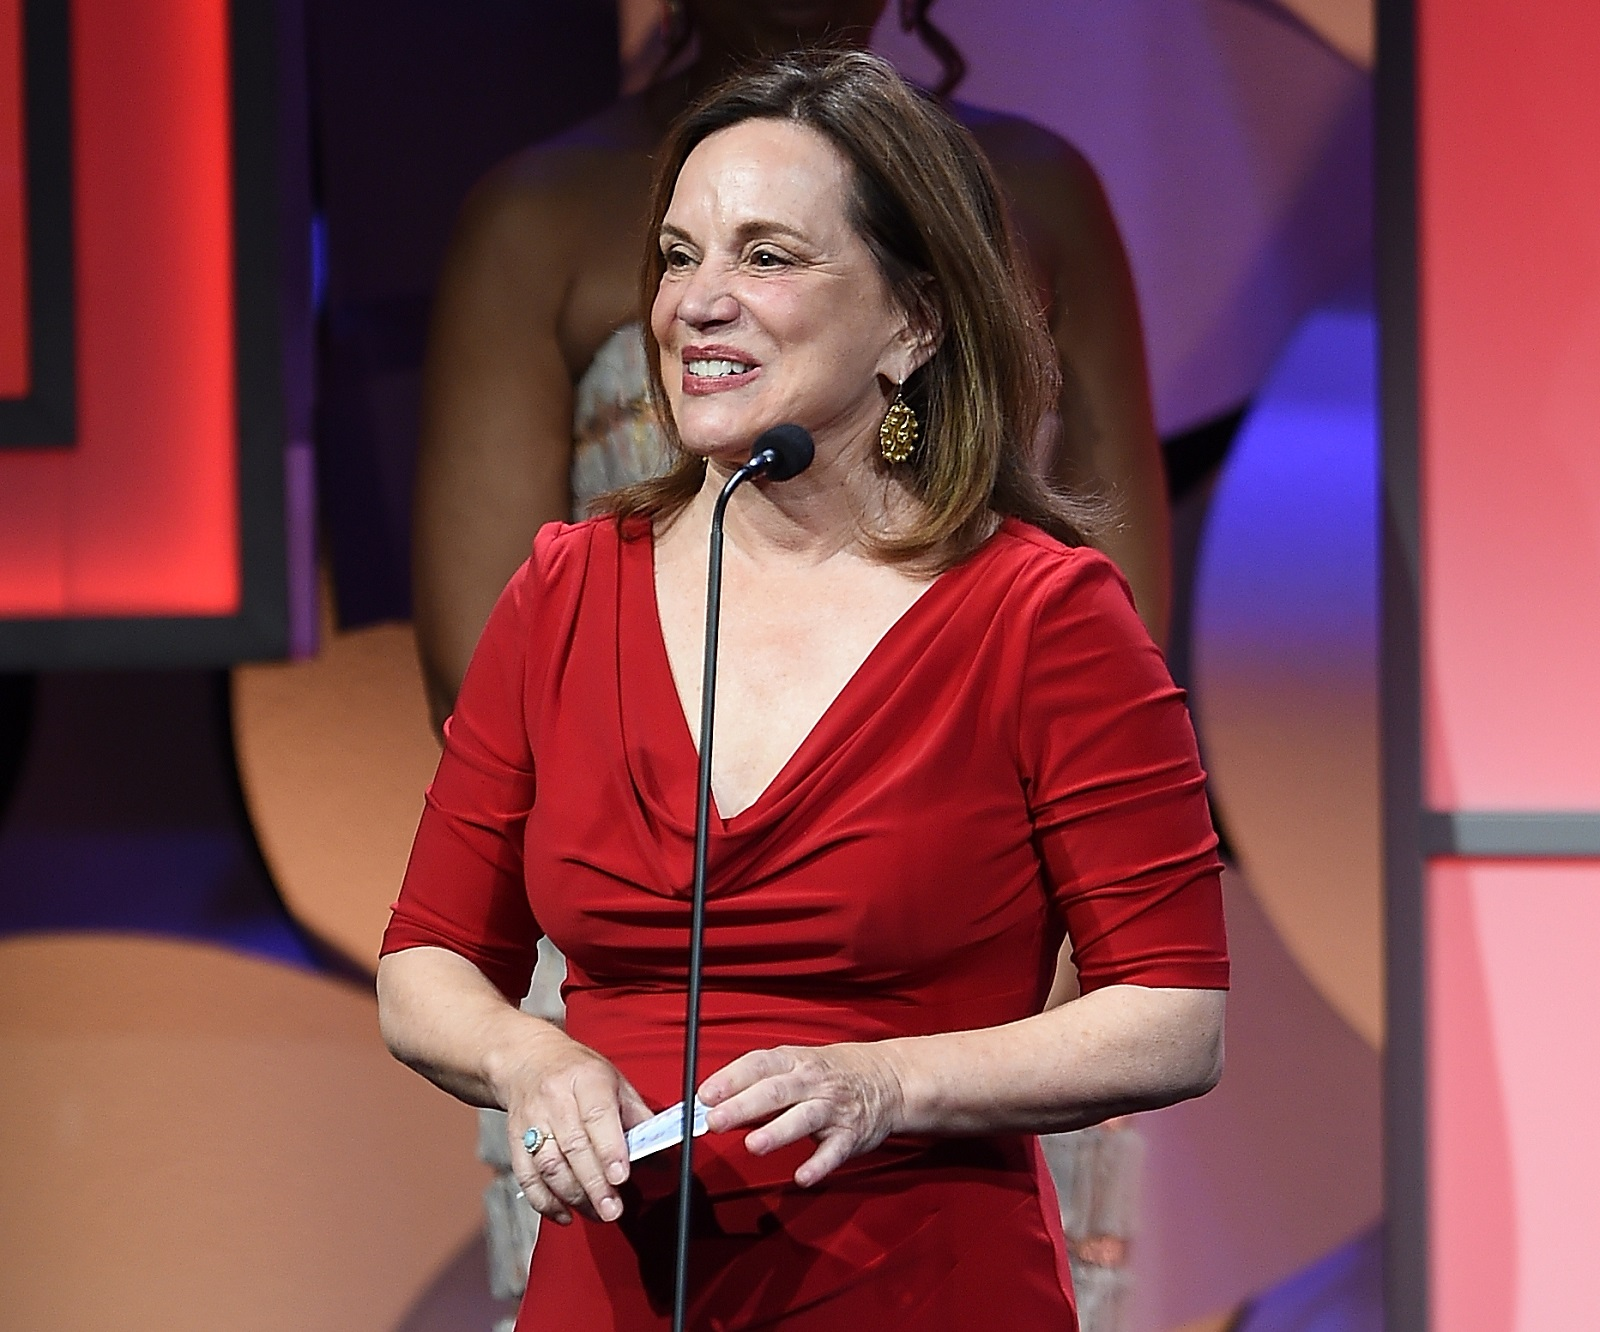 Renee Montagne will speak at the WNED-WBFO Studios. (Photo by Getty Images)